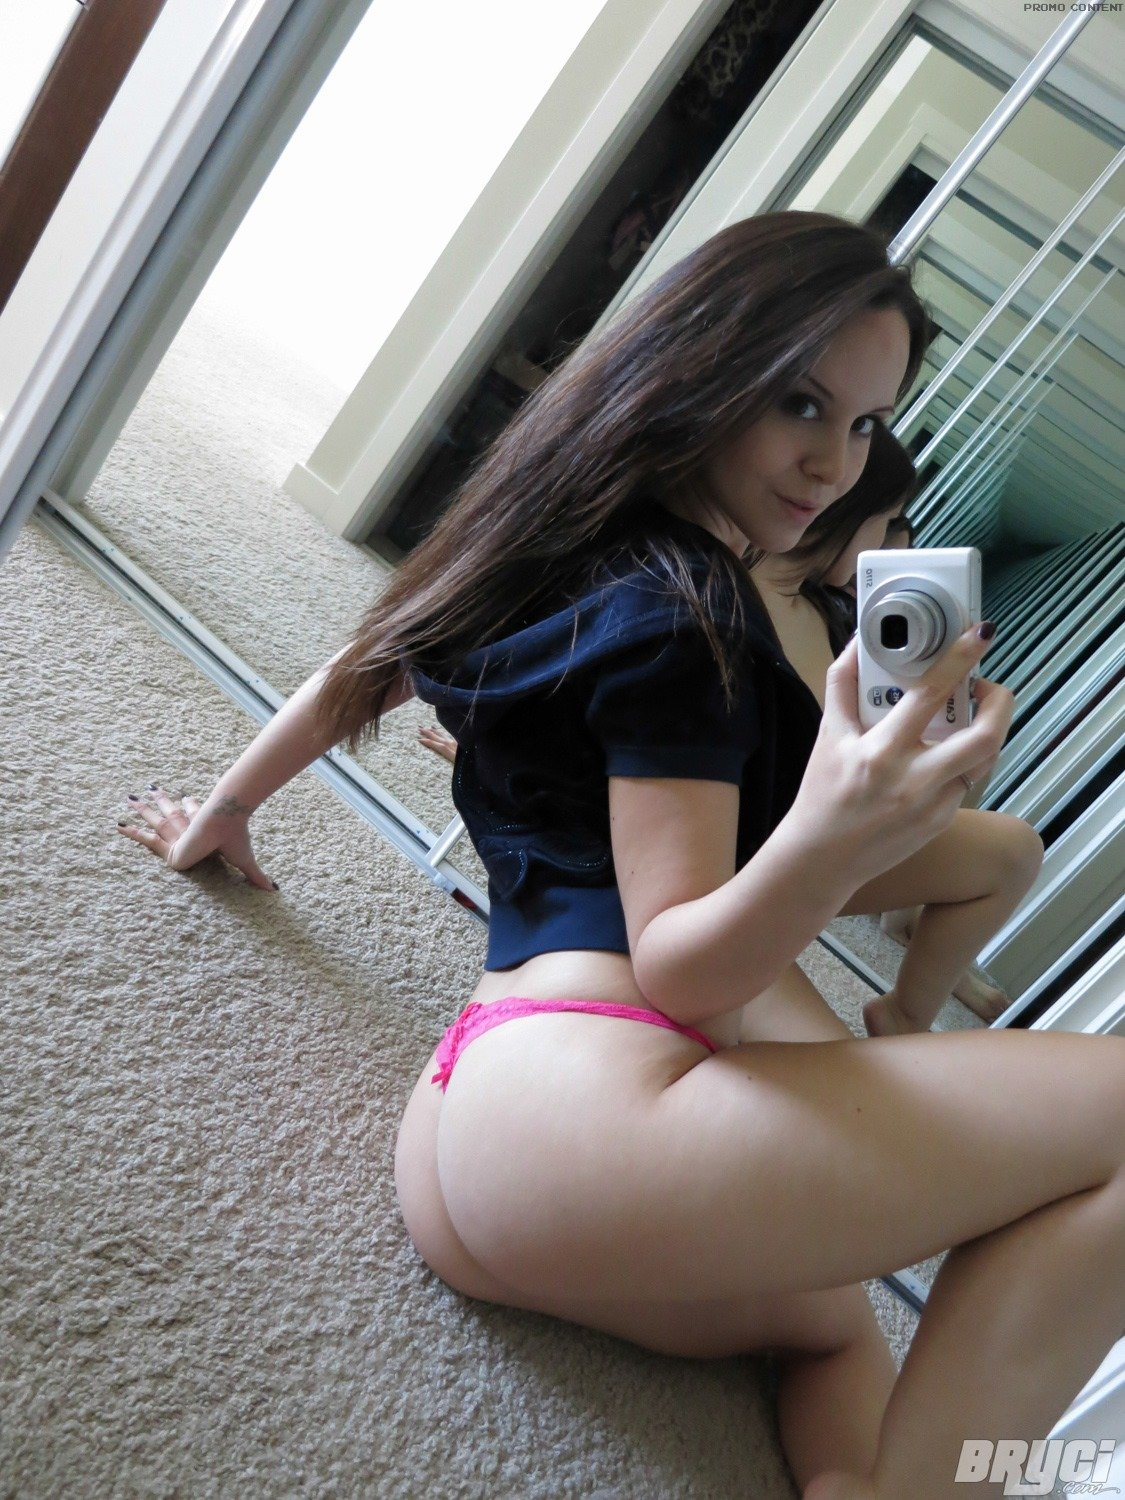 Two sexy babes self shot nude not